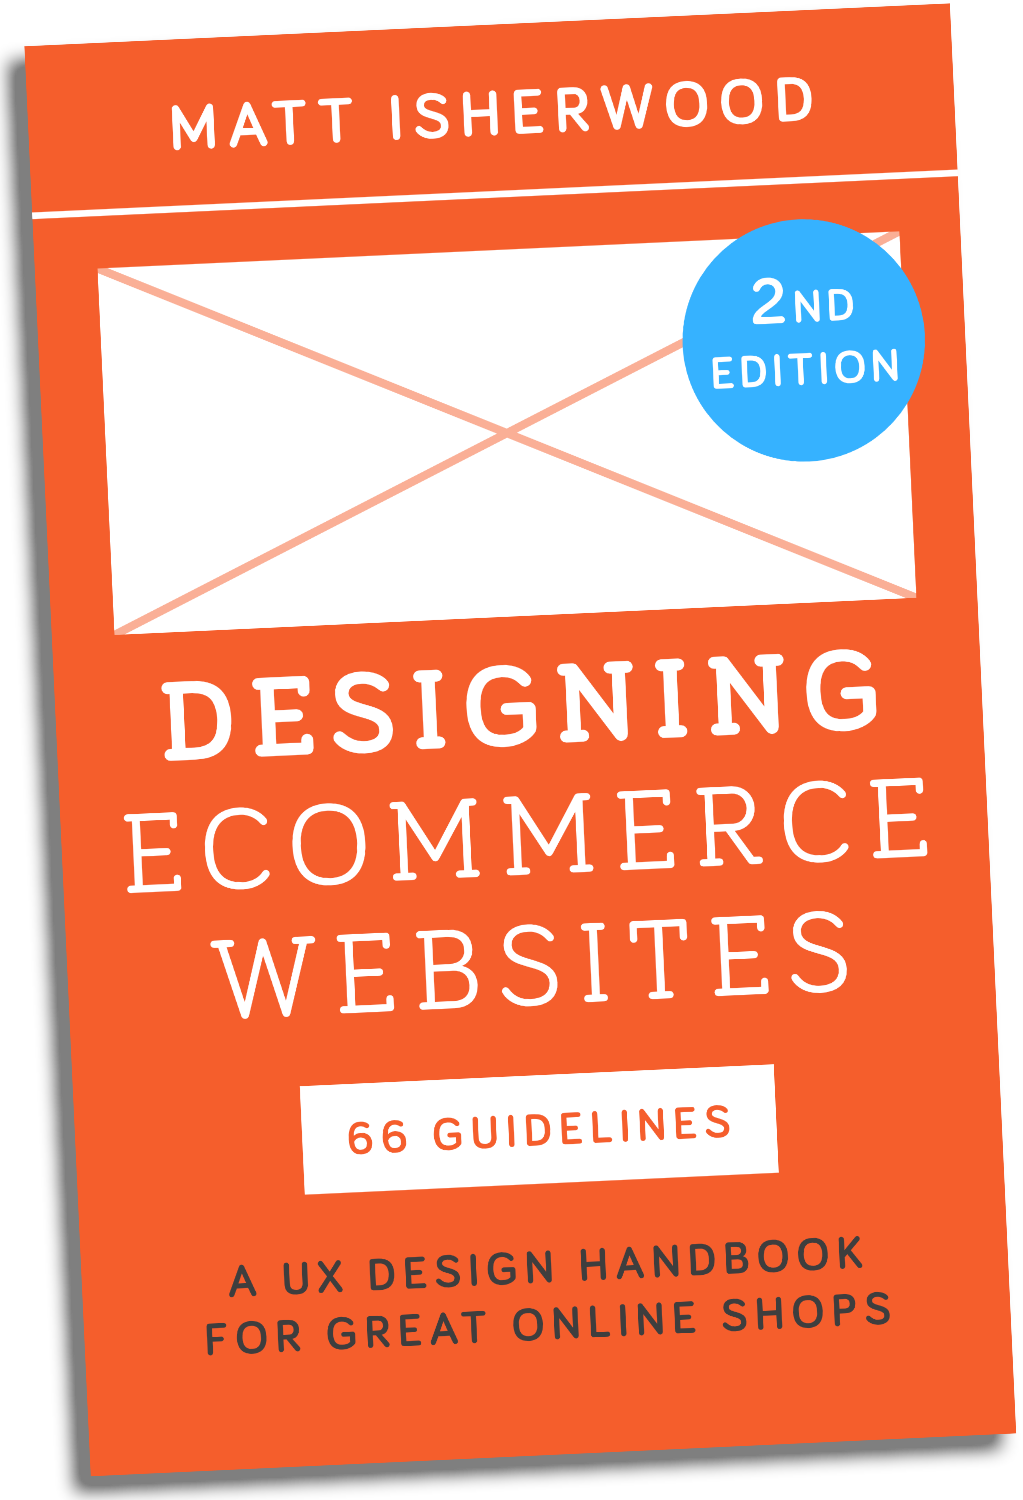 Designing Ecommerce Websites 2nd edition book cover